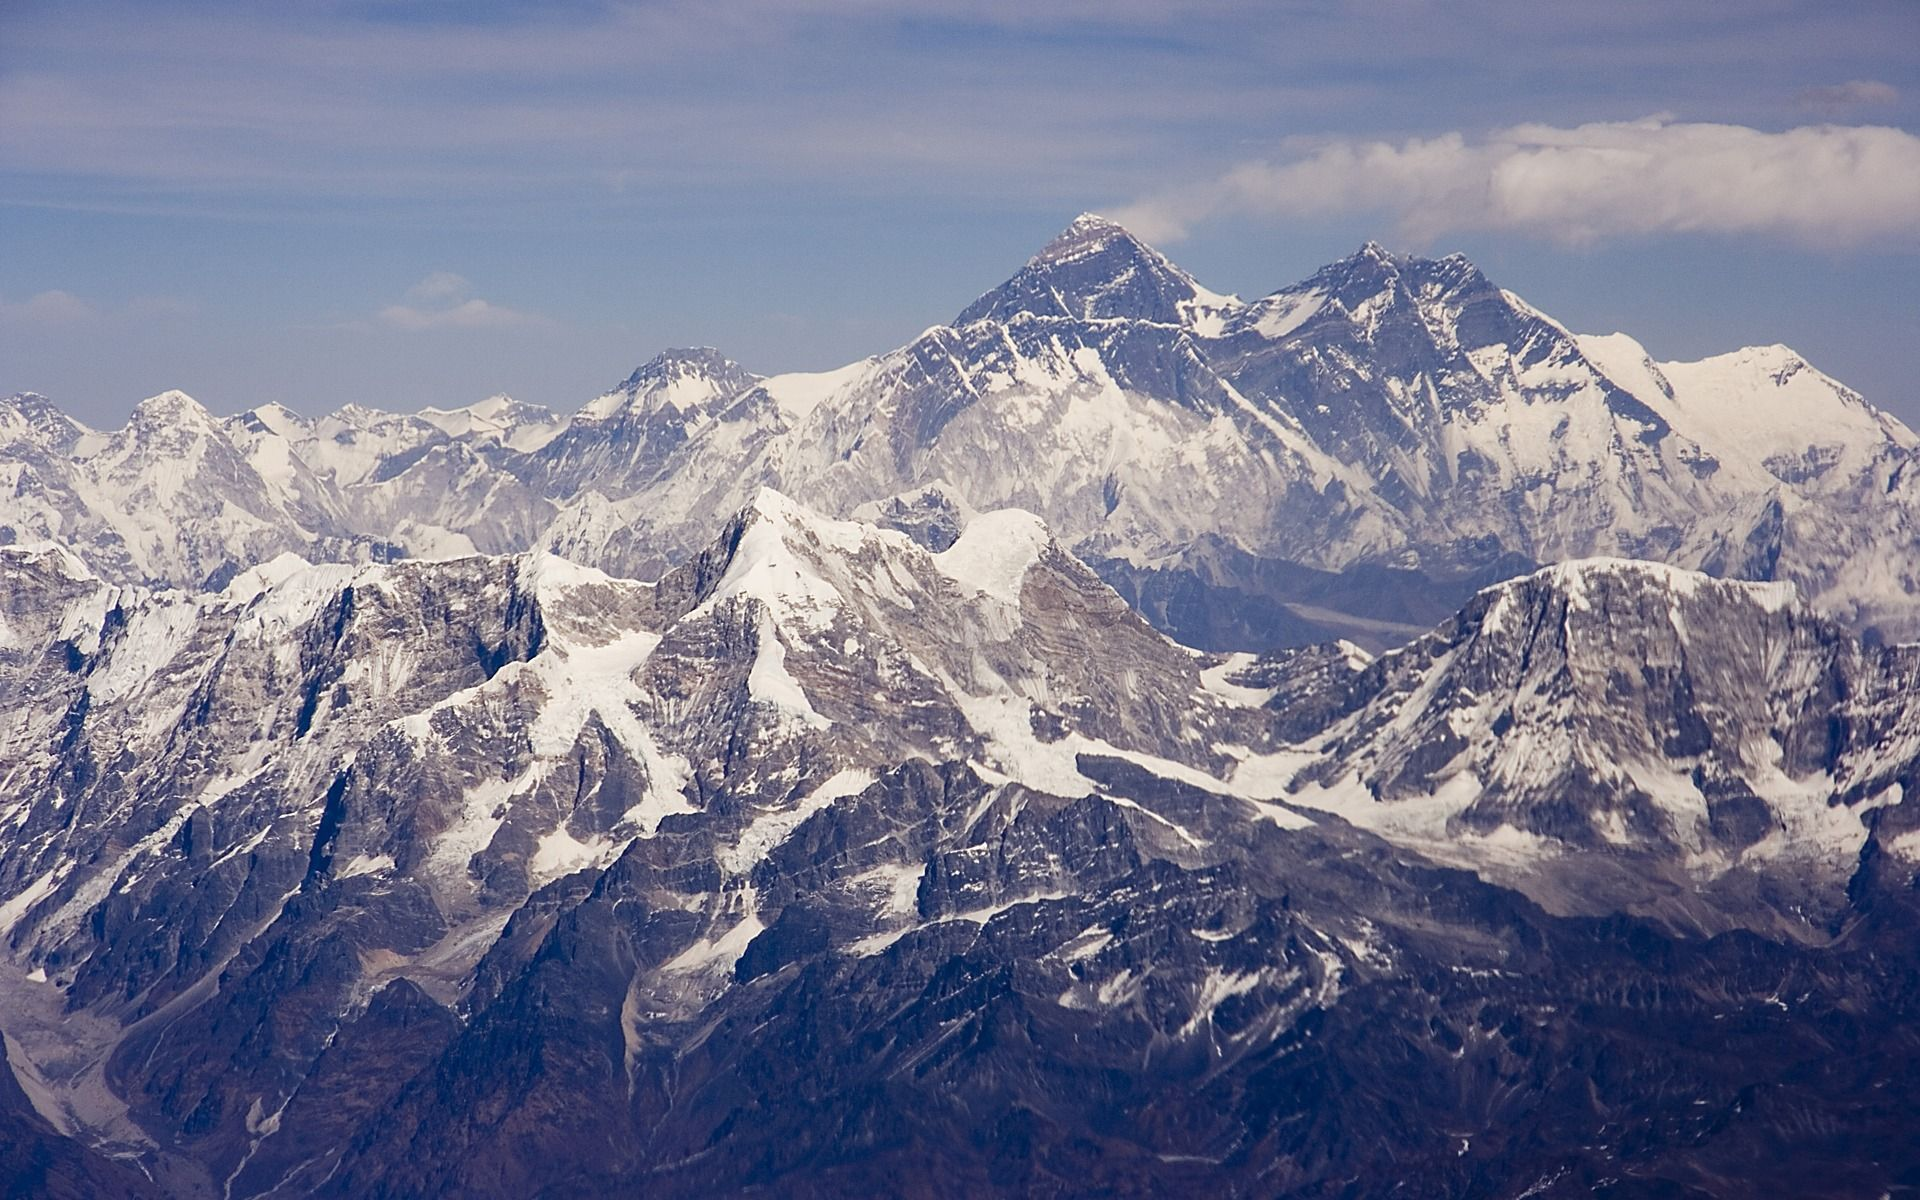 Mount Everest Hd Wallpapers Backgrounds Wallpaper Mount Everest Nature Wallpaper Everest